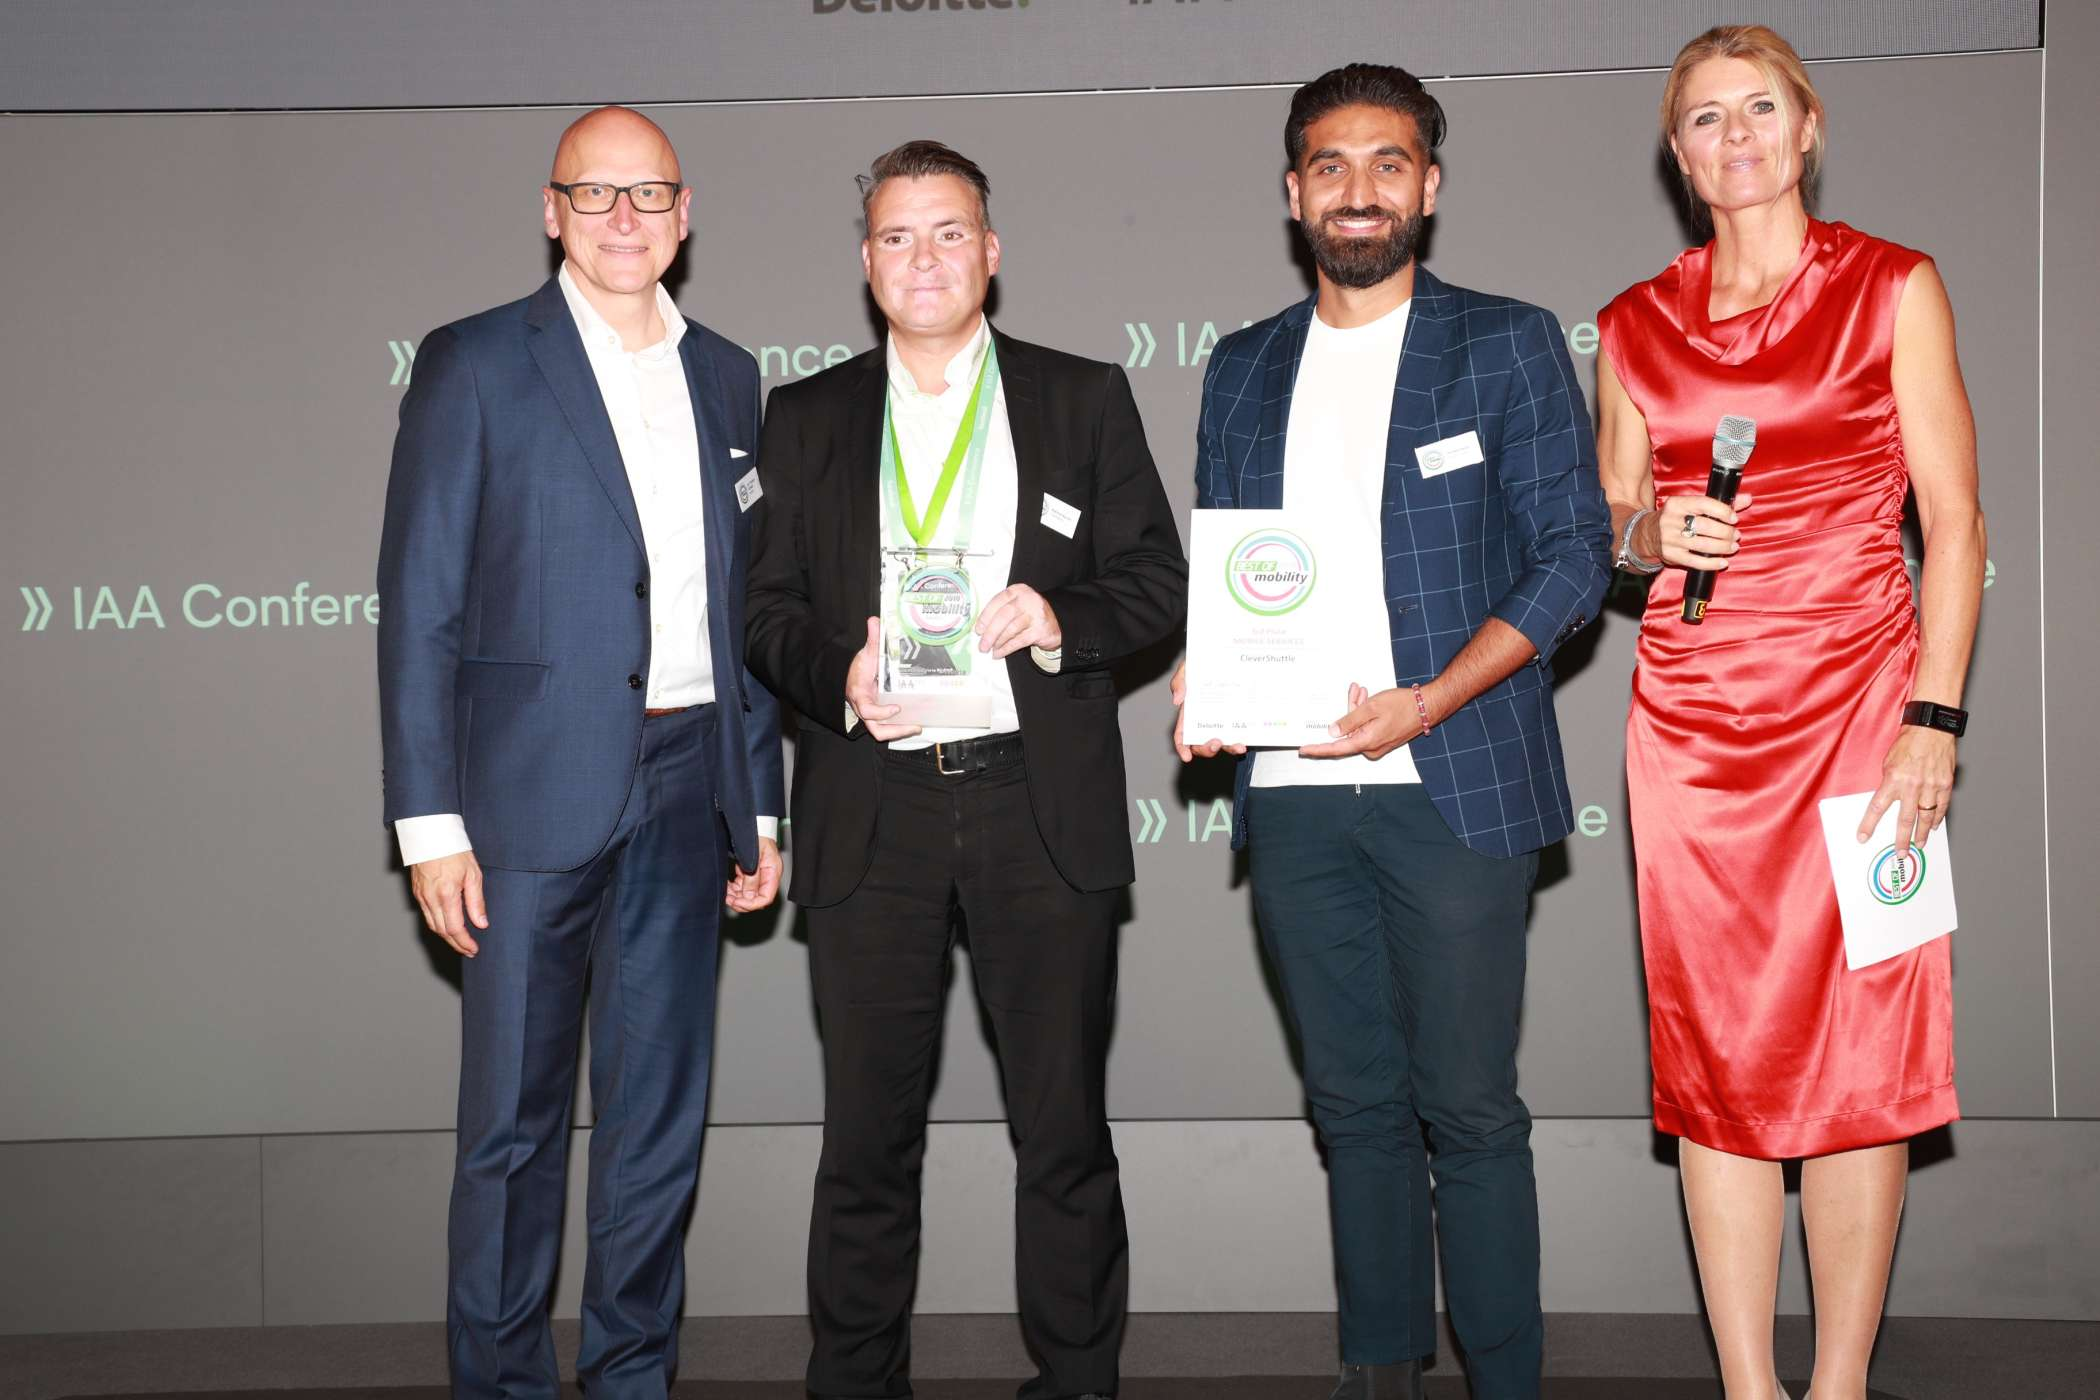 Mobile Services: Dr. Thomas Schiller, Partner Automotive Lead Deloitte (li.) und Moderatorin Maren Braun (re.) mit Patrick Kurth, Leiter Politik FlixBus/FlixTrain (2.v.l.) (Platz 1) und Soheyl Fard, Betriebsleiter Frankfurt, CleverShuttle (3.v.l.) (Platz 3). | Foto: H. Weipert